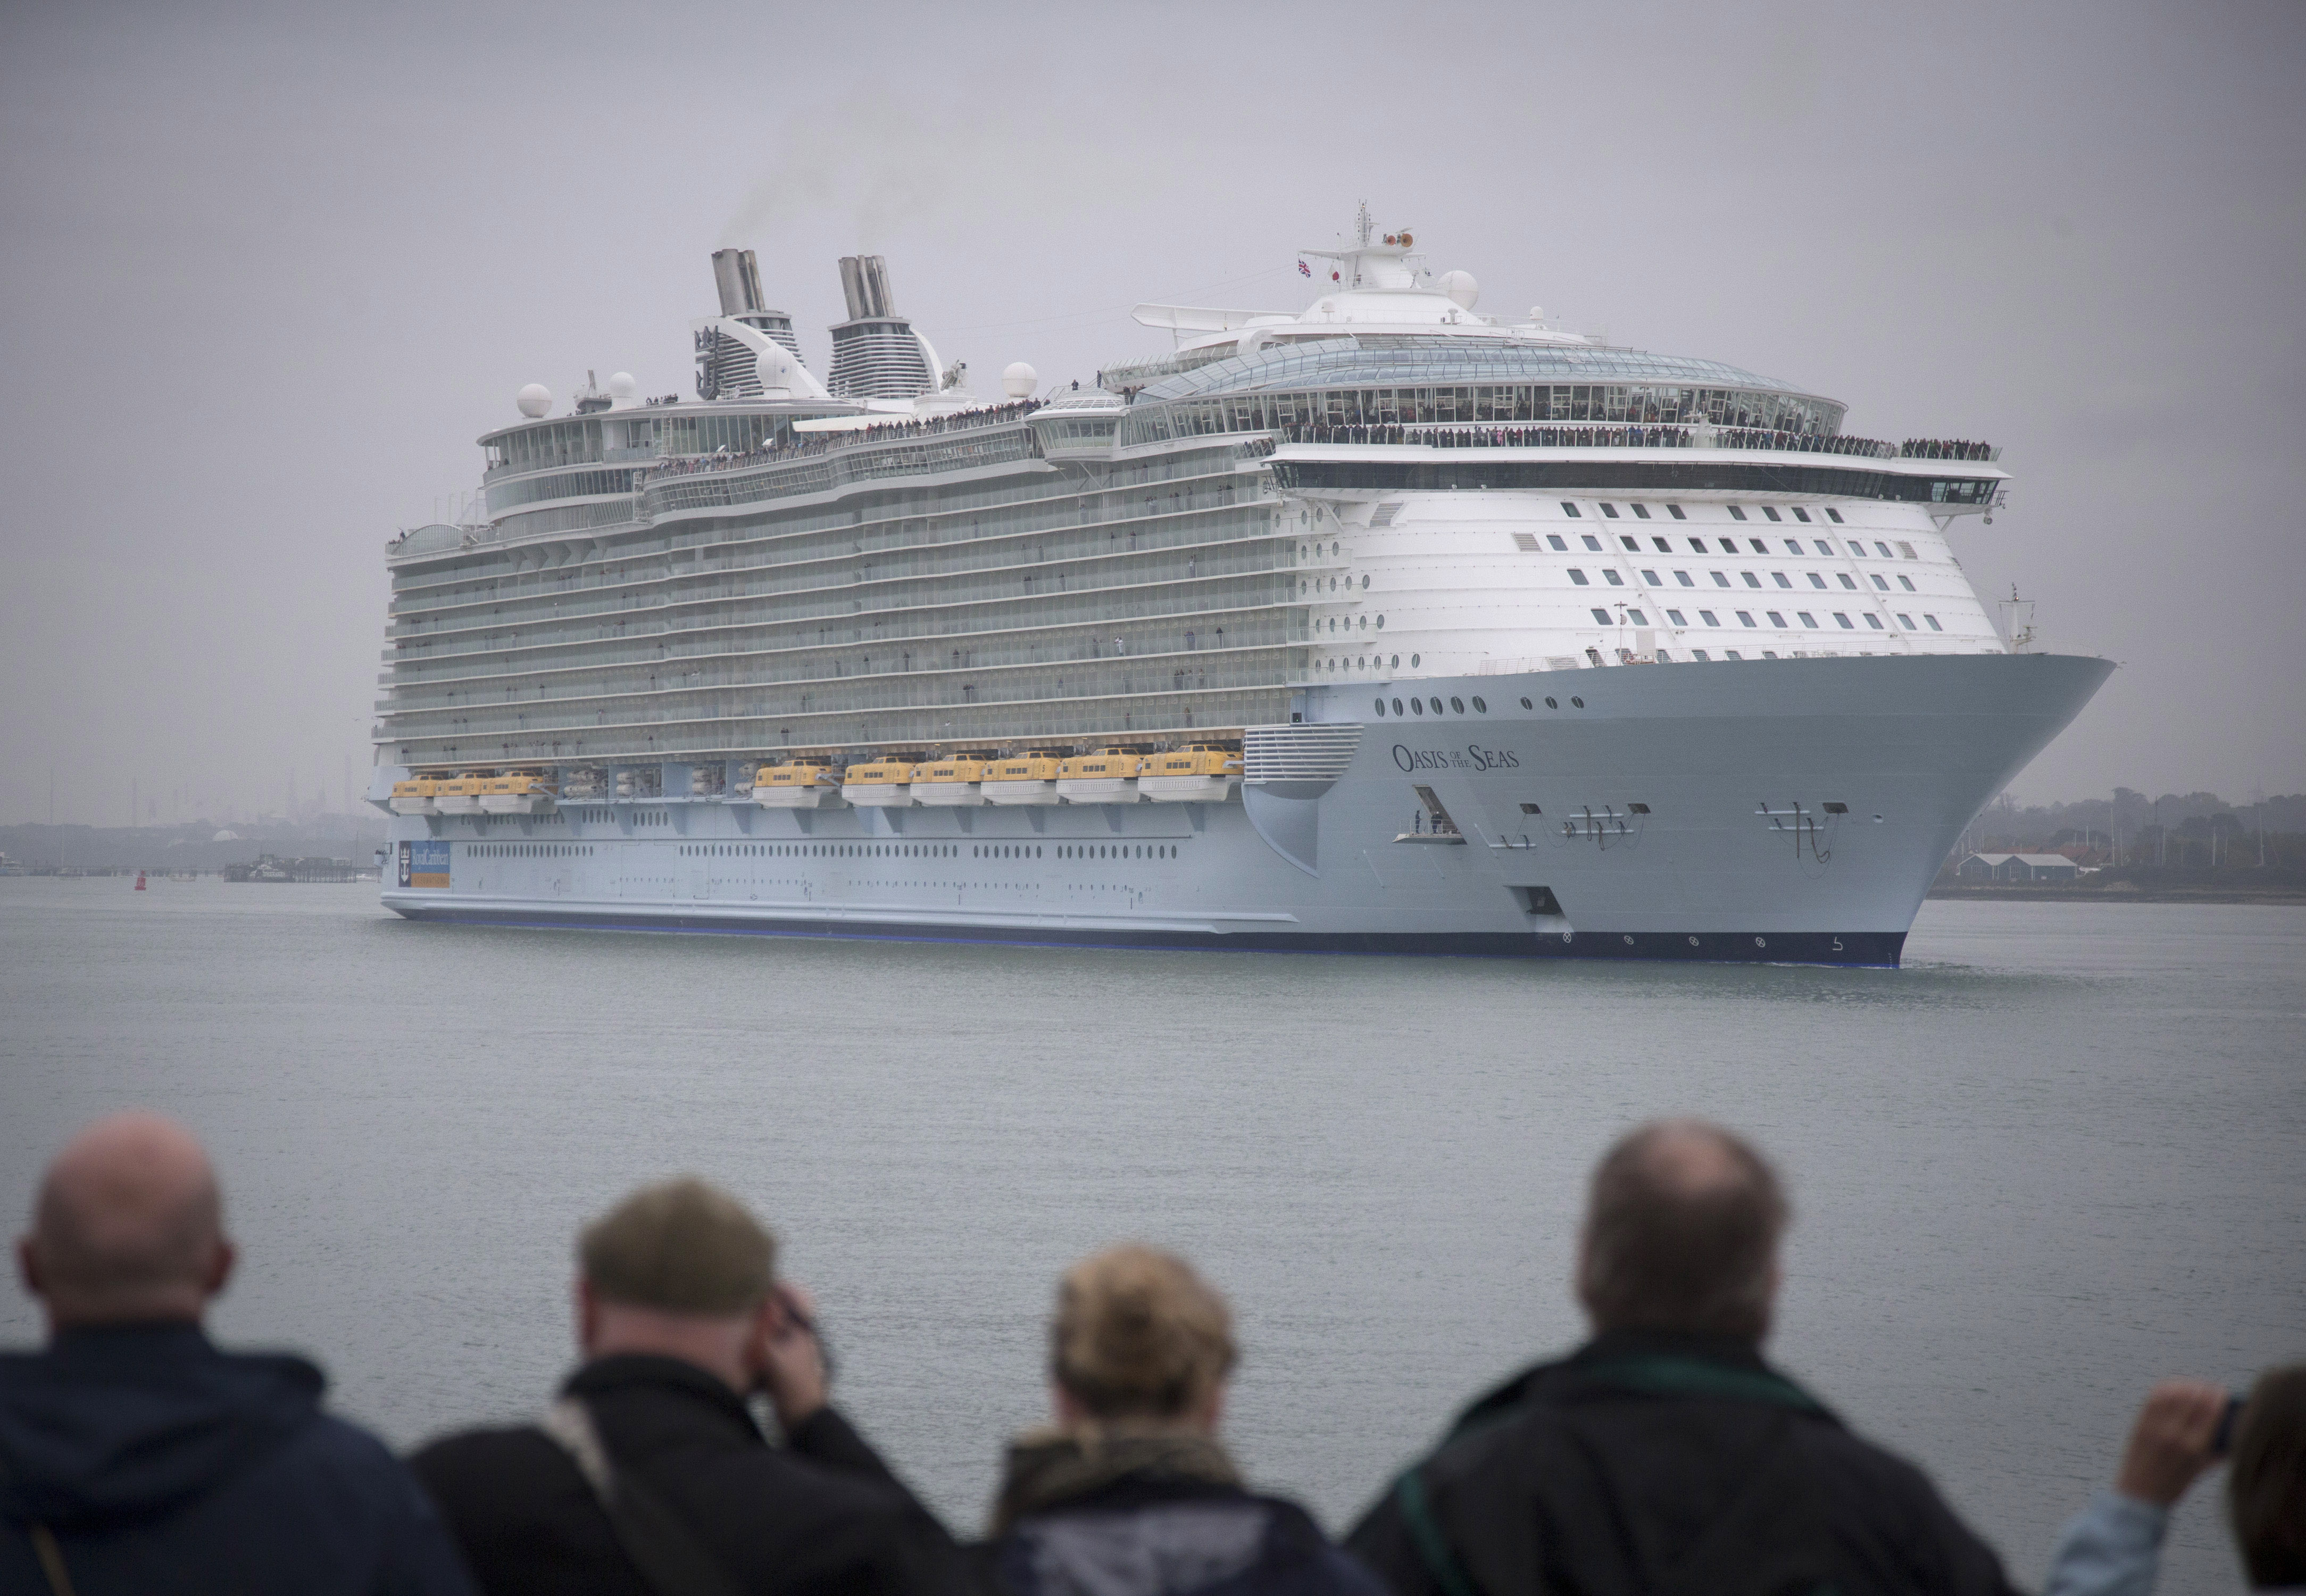 Royal Caribbean's Oasis of the Seas arrives in Southampton, England in 2014. With a record 30 million people taking cruises this year, it is vital to understand the care available should you encounter a health issue while on board.